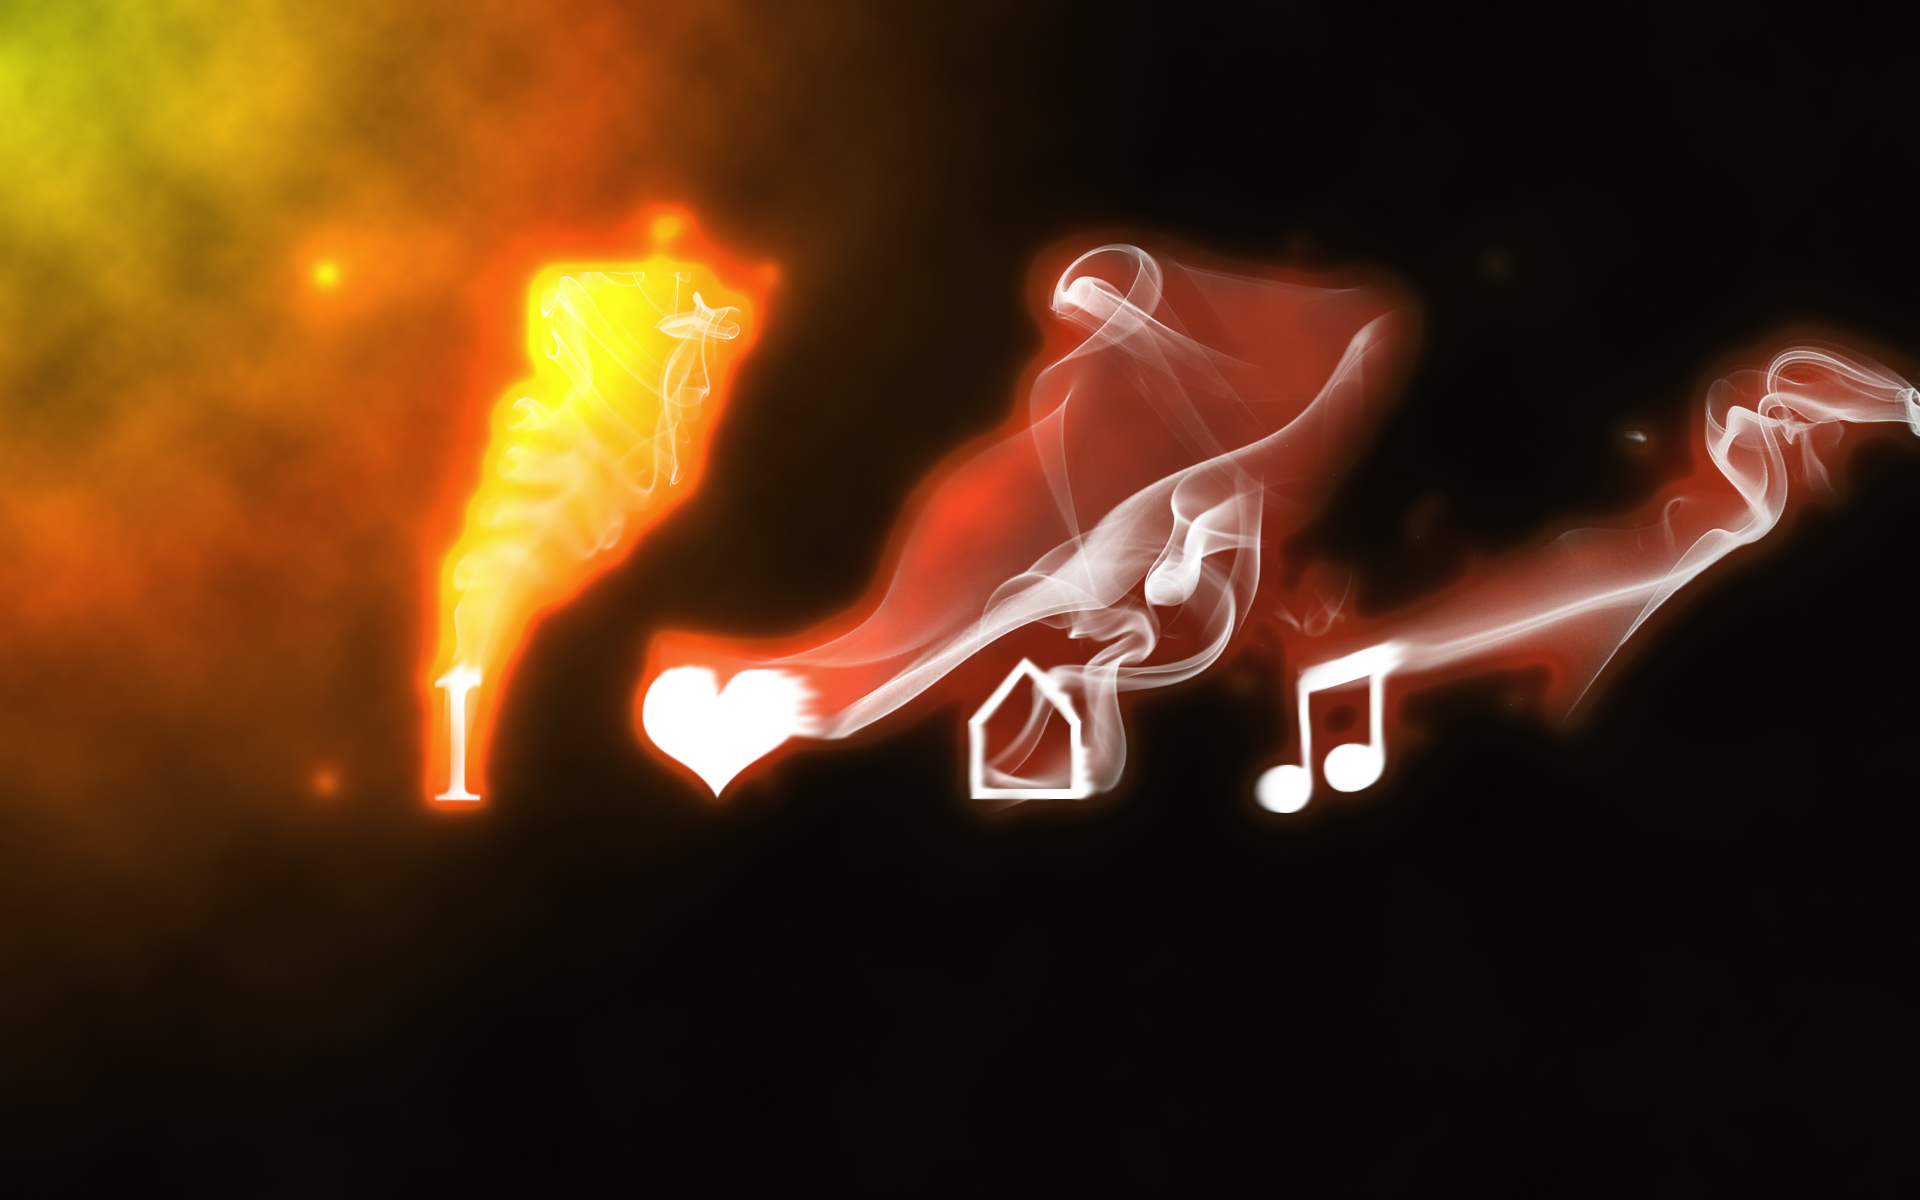 I heart house music by ministry666 on deviantart for Musik hause